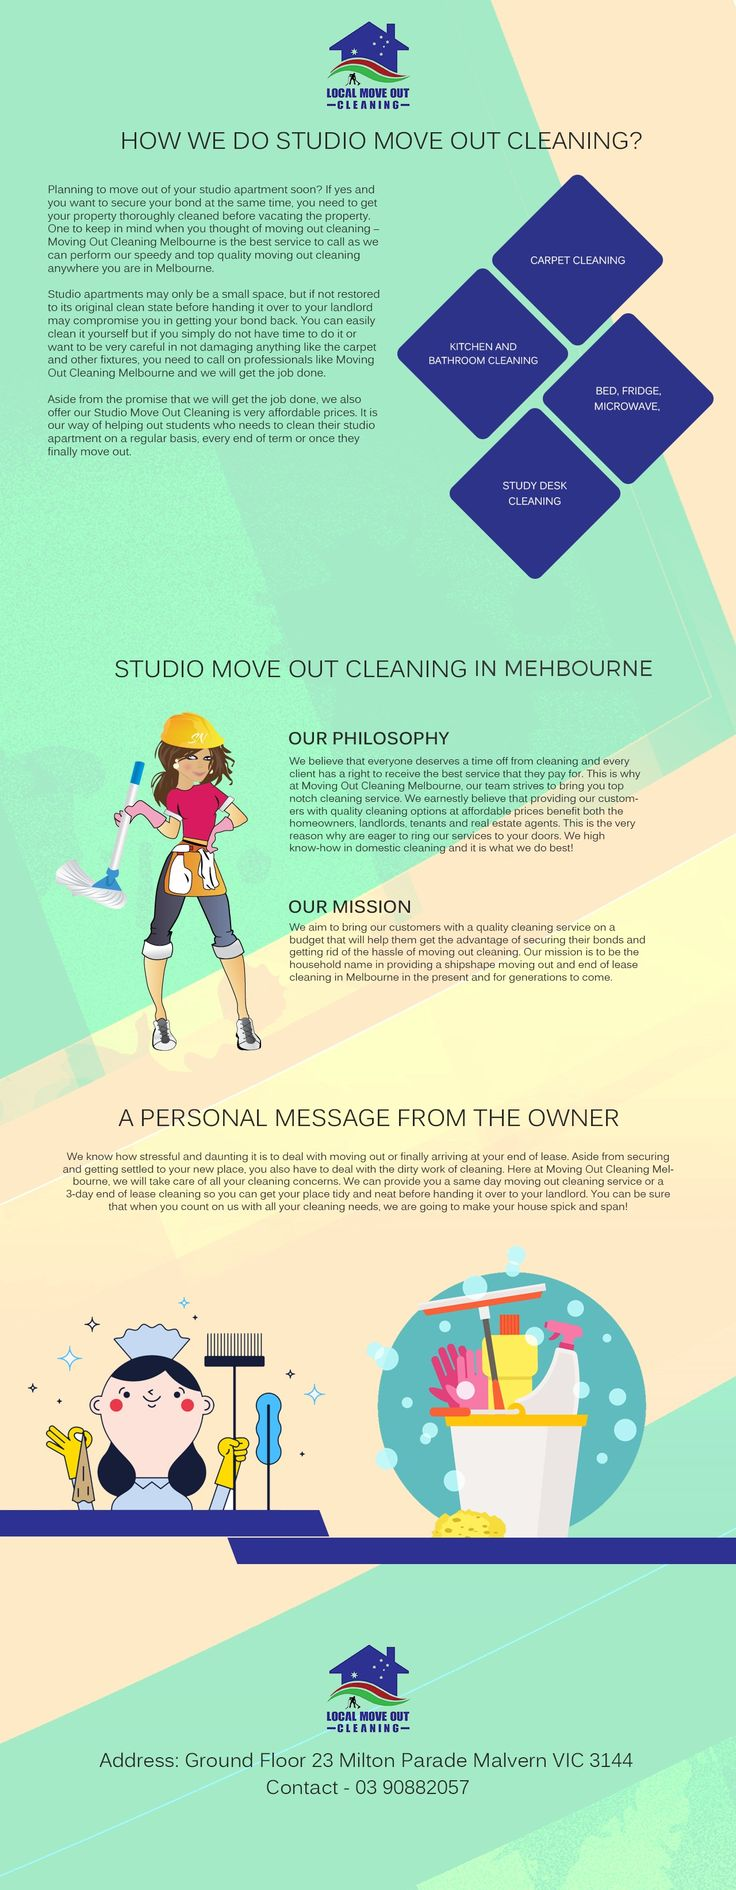 25+ unique Move out cleaning ideas on Pinterest | Cleaning tips ...